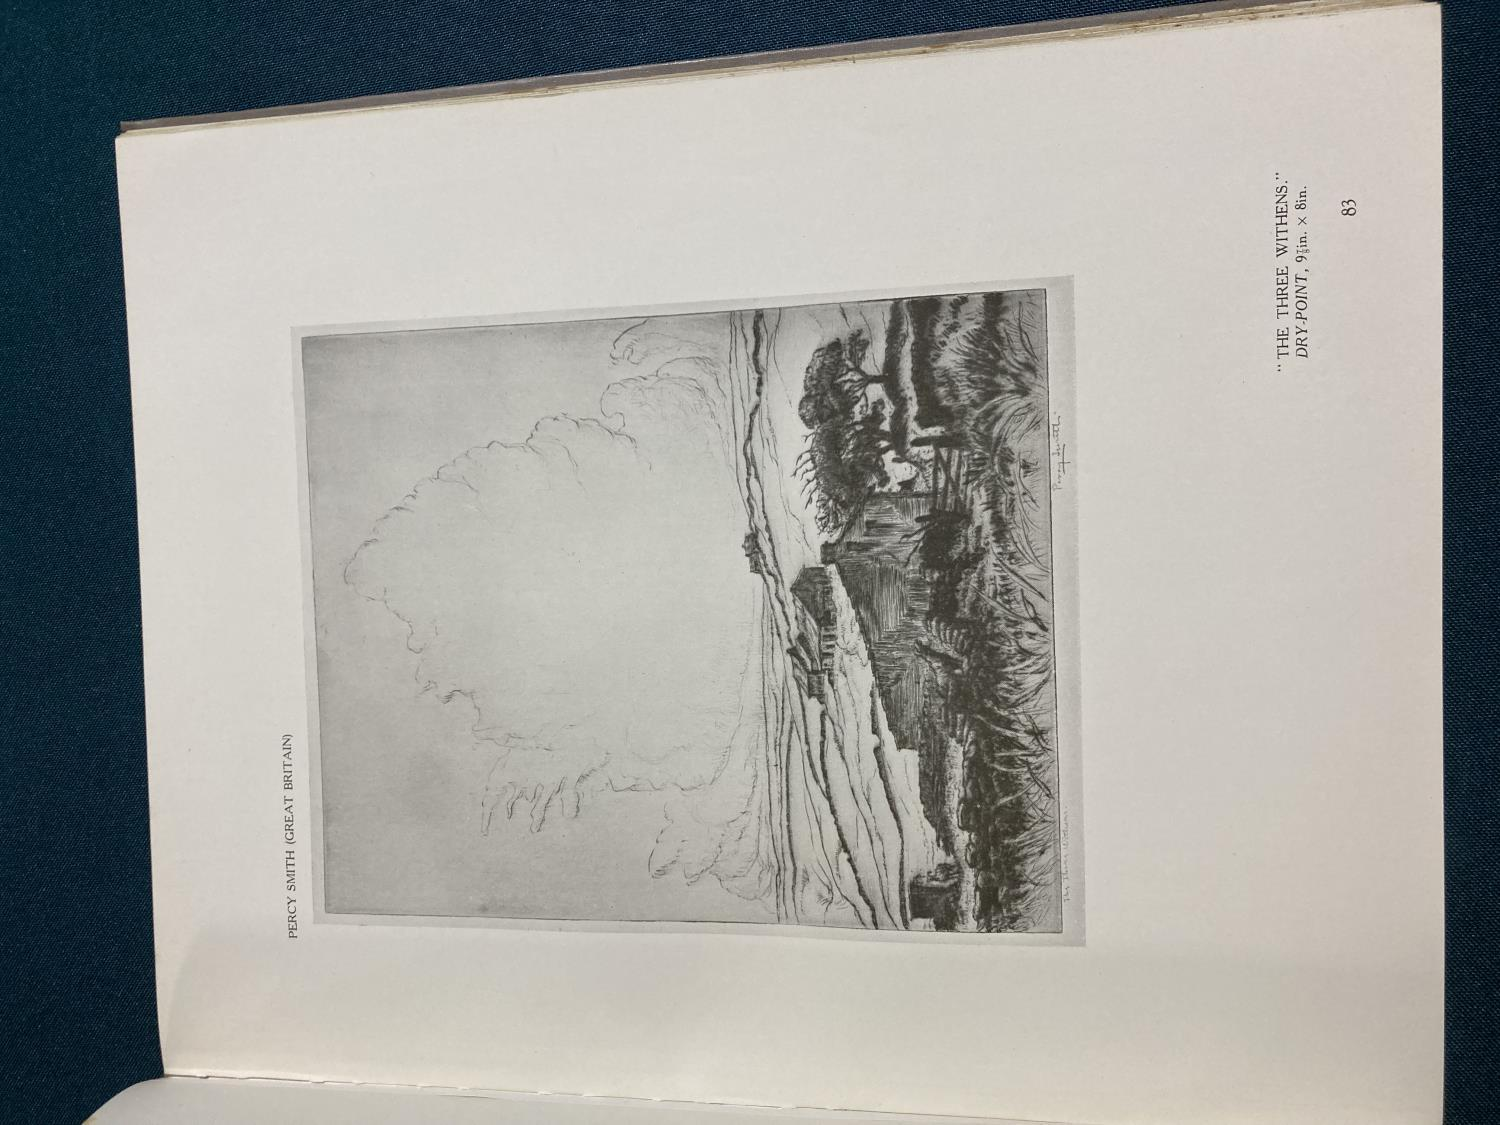 Dodgson, Cambell. The Etchings of James McNeill Whistler, plates, original vellum-backed boards, - Image 12 of 21